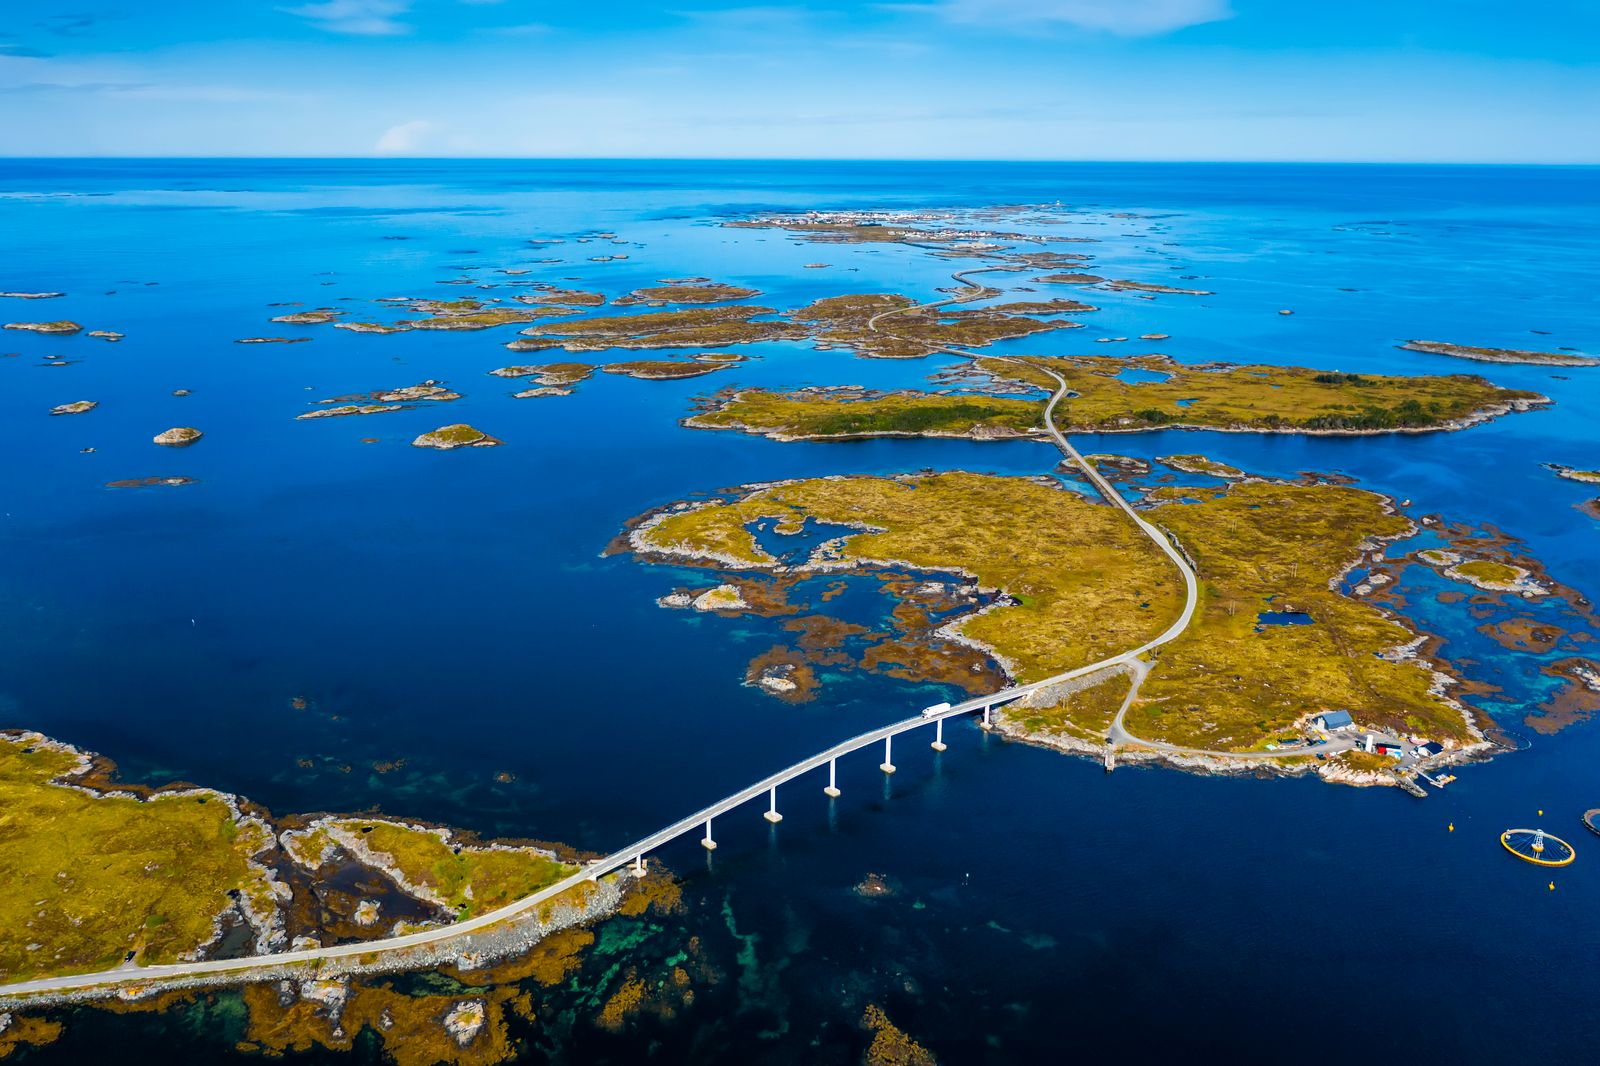 Aerial view of beautiful road with bridge on the island Smola, Norway.